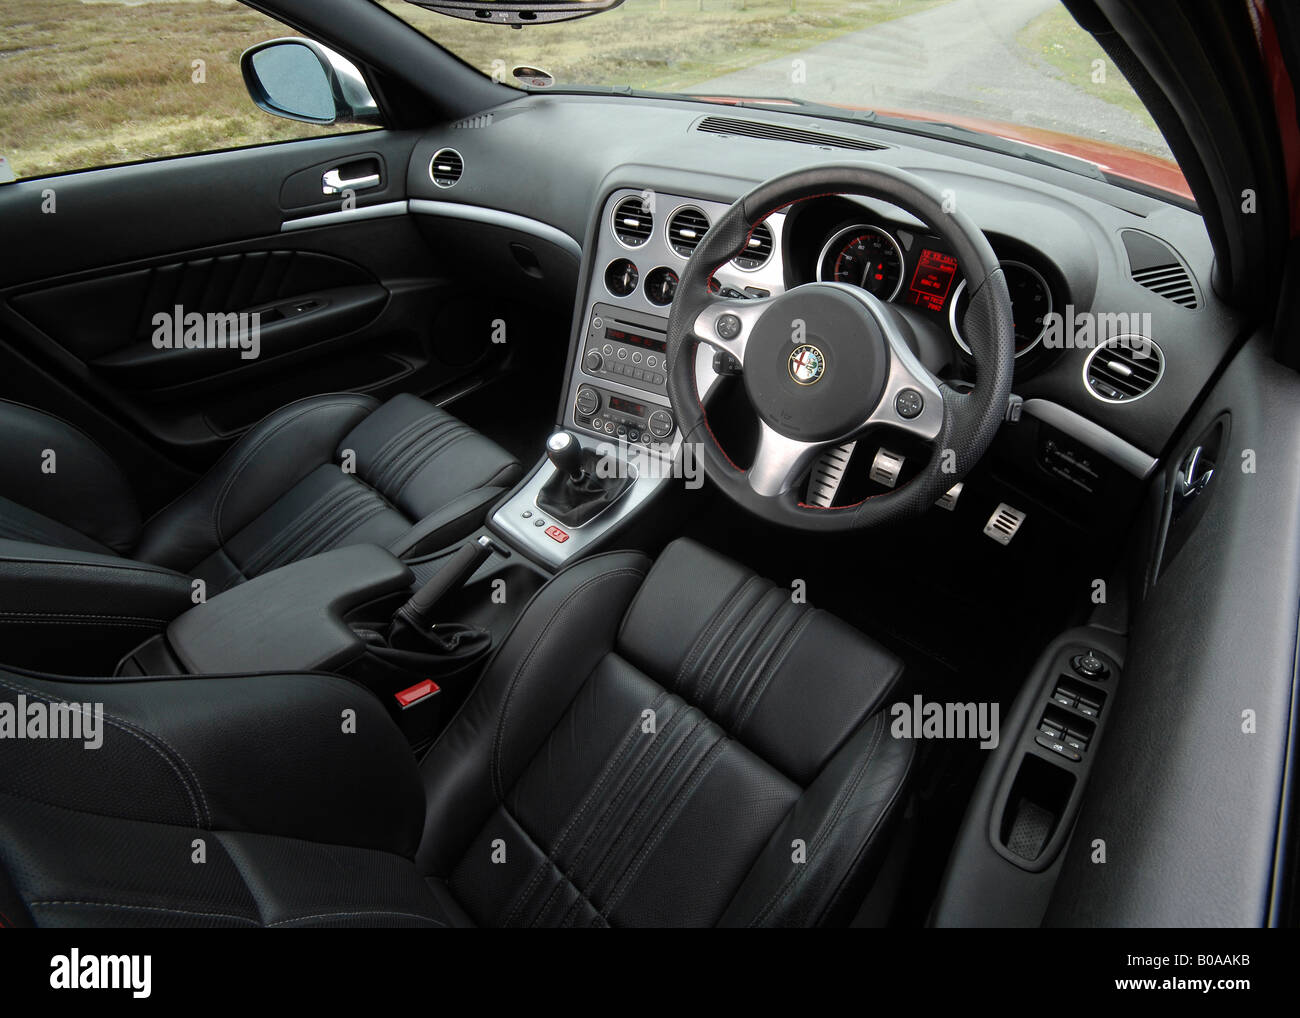 Page 2 Alfa Romeo 159 High Resolution Stock Photography And Images Alamy